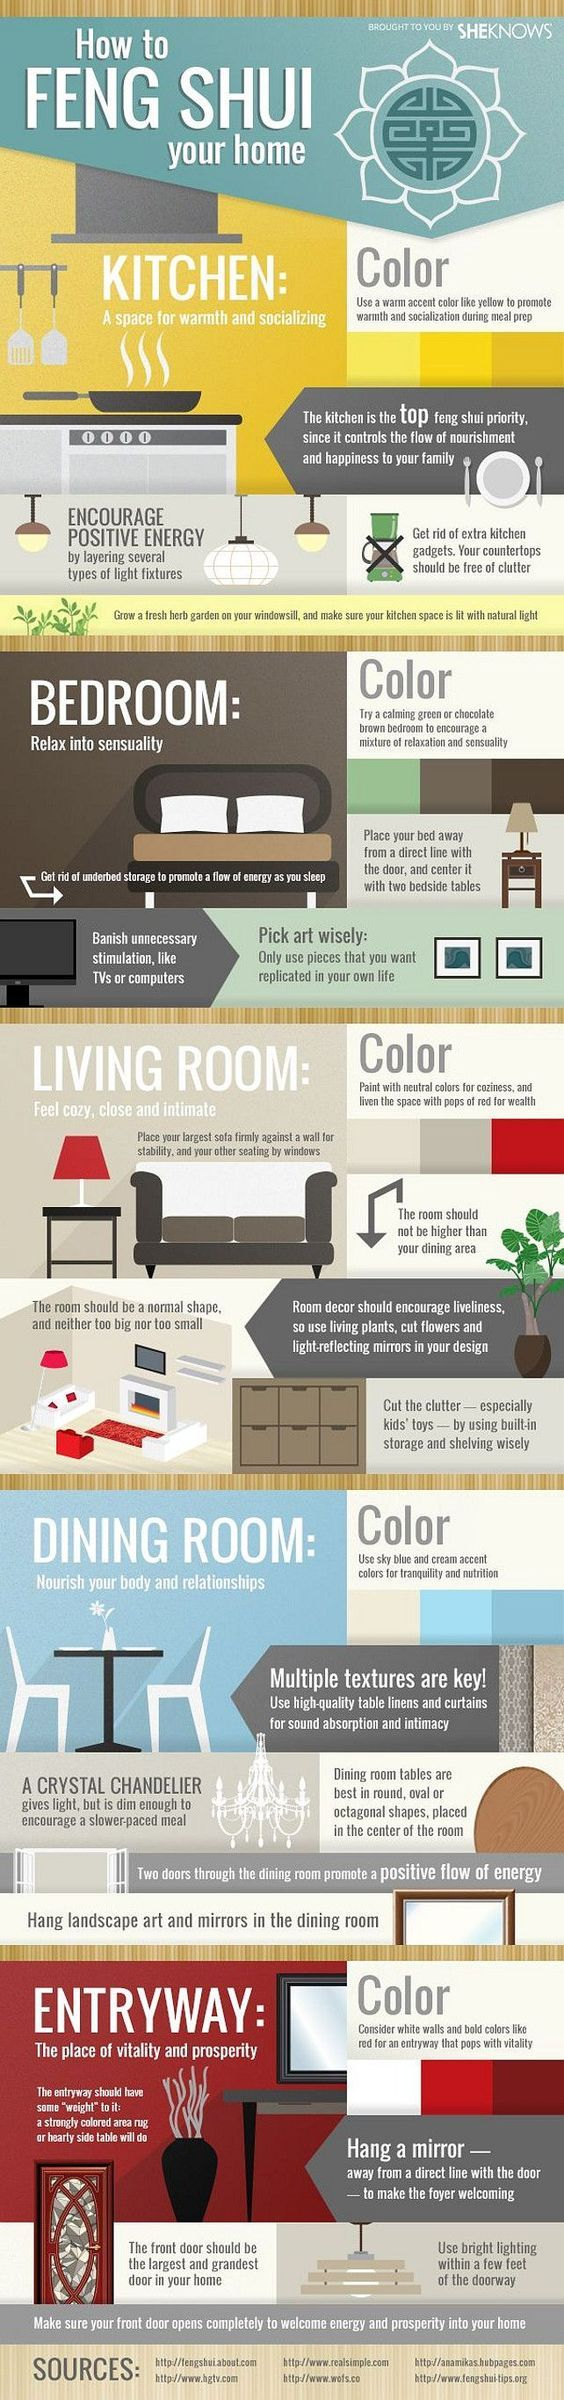 Feng shui Decorating Tips. A room-by-room guide to feng shui your home. www.homeology.co.za